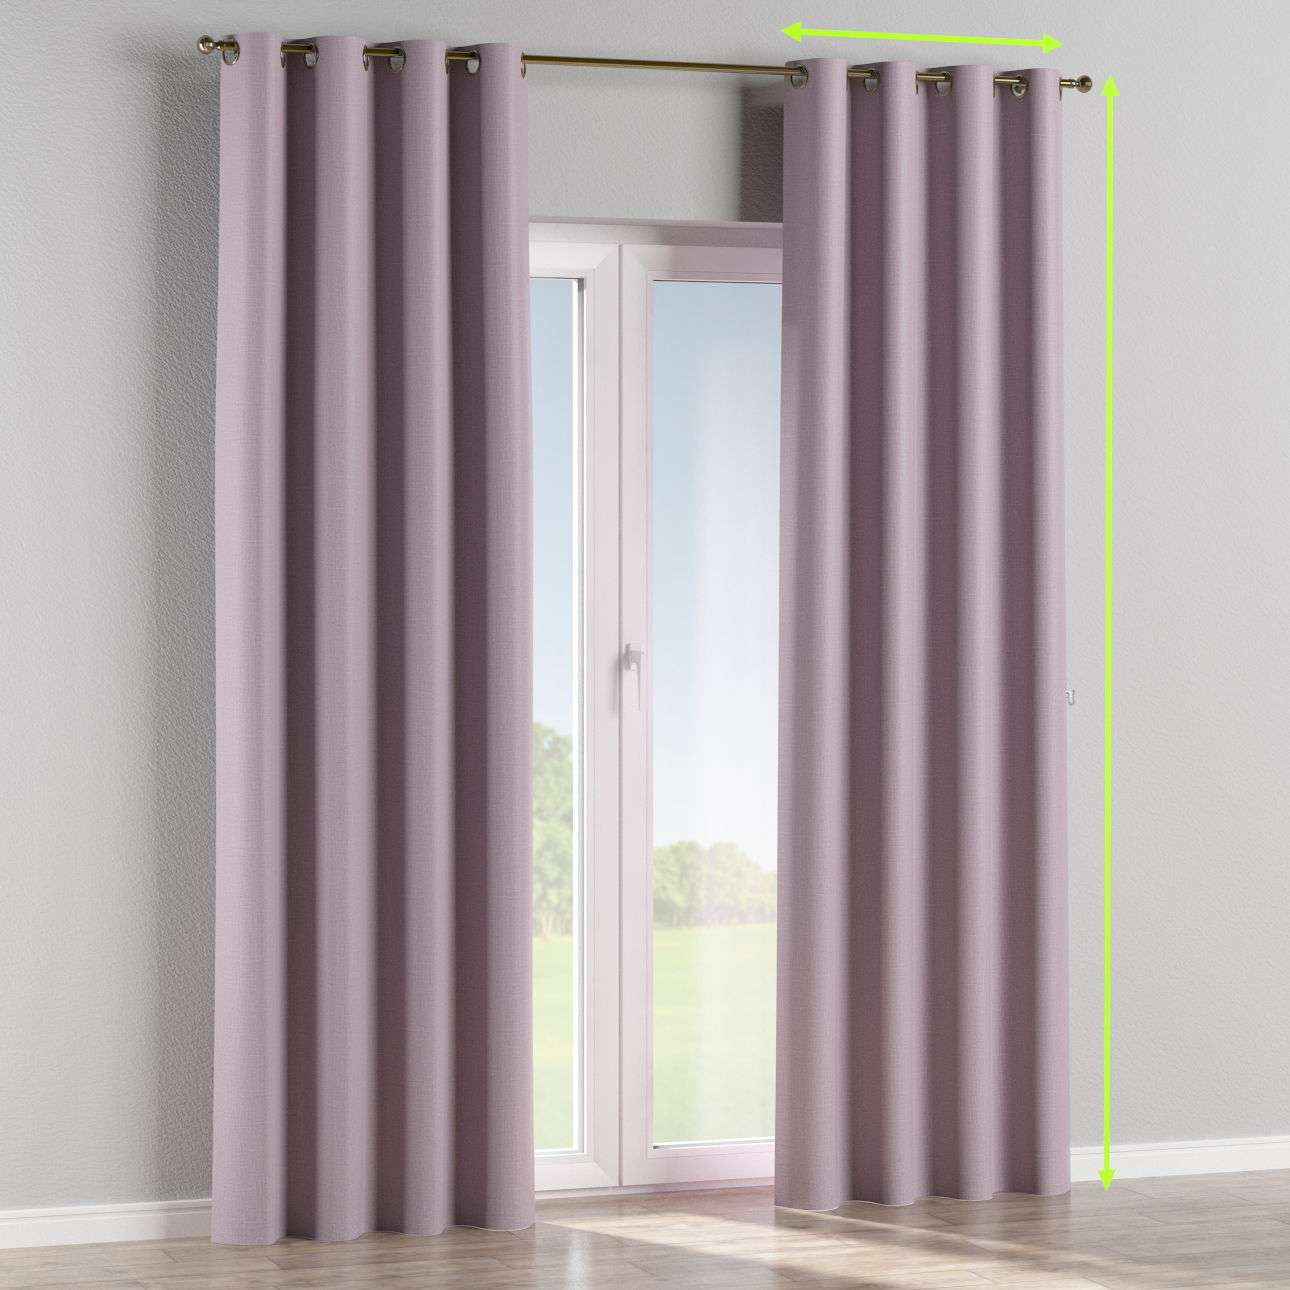 Eyelet curtain in collection Blackout, fabric: 269-60